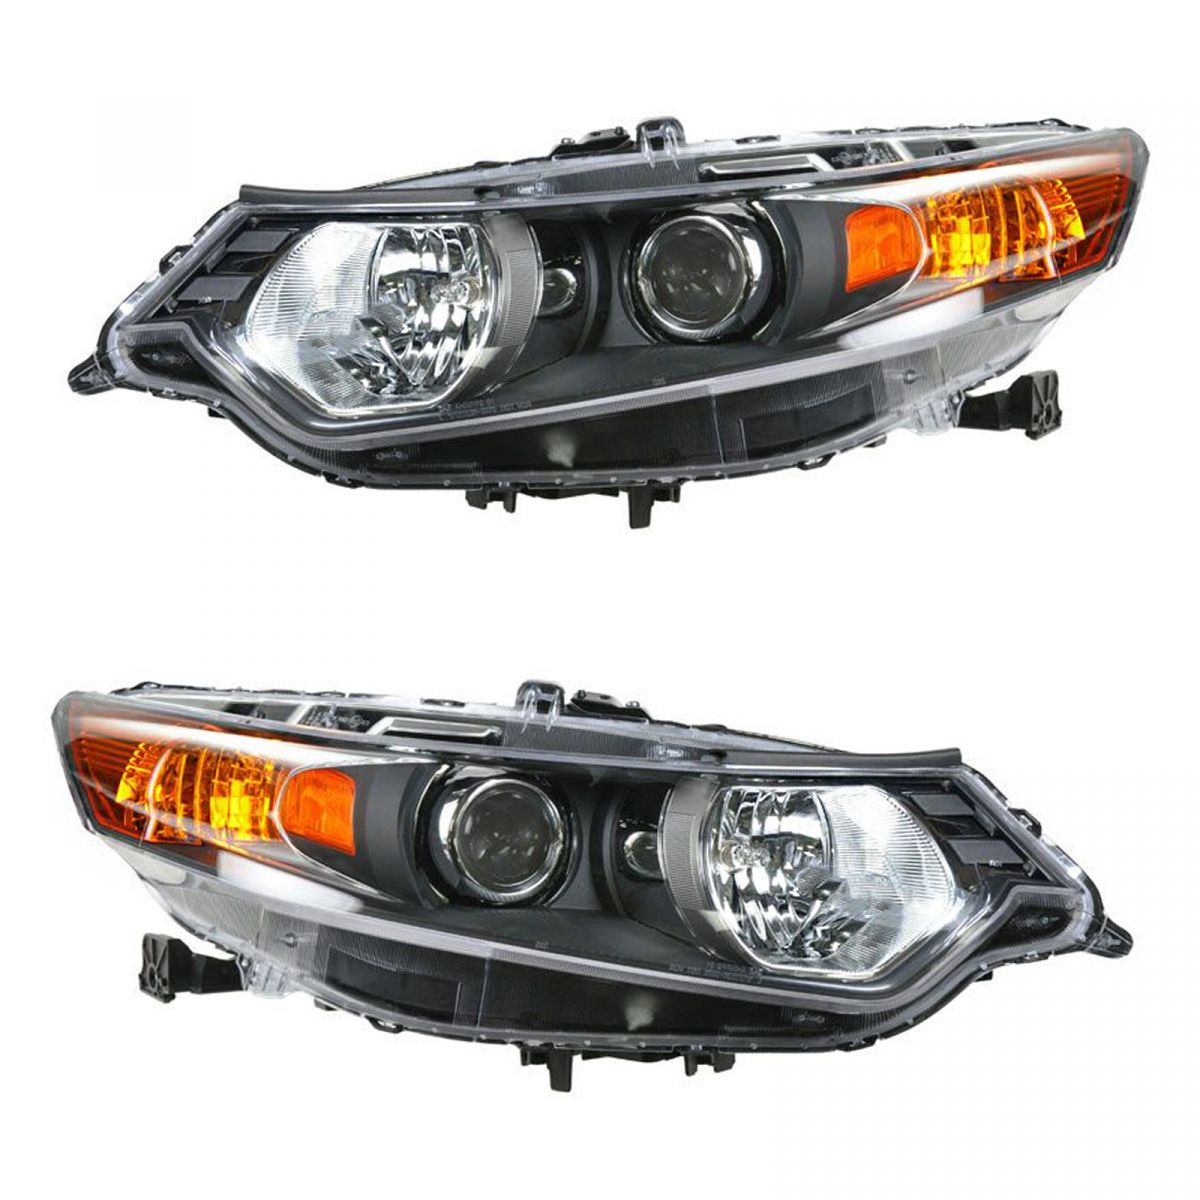 HID Xenon Headlights Headlamps Left & Right Pair Set For